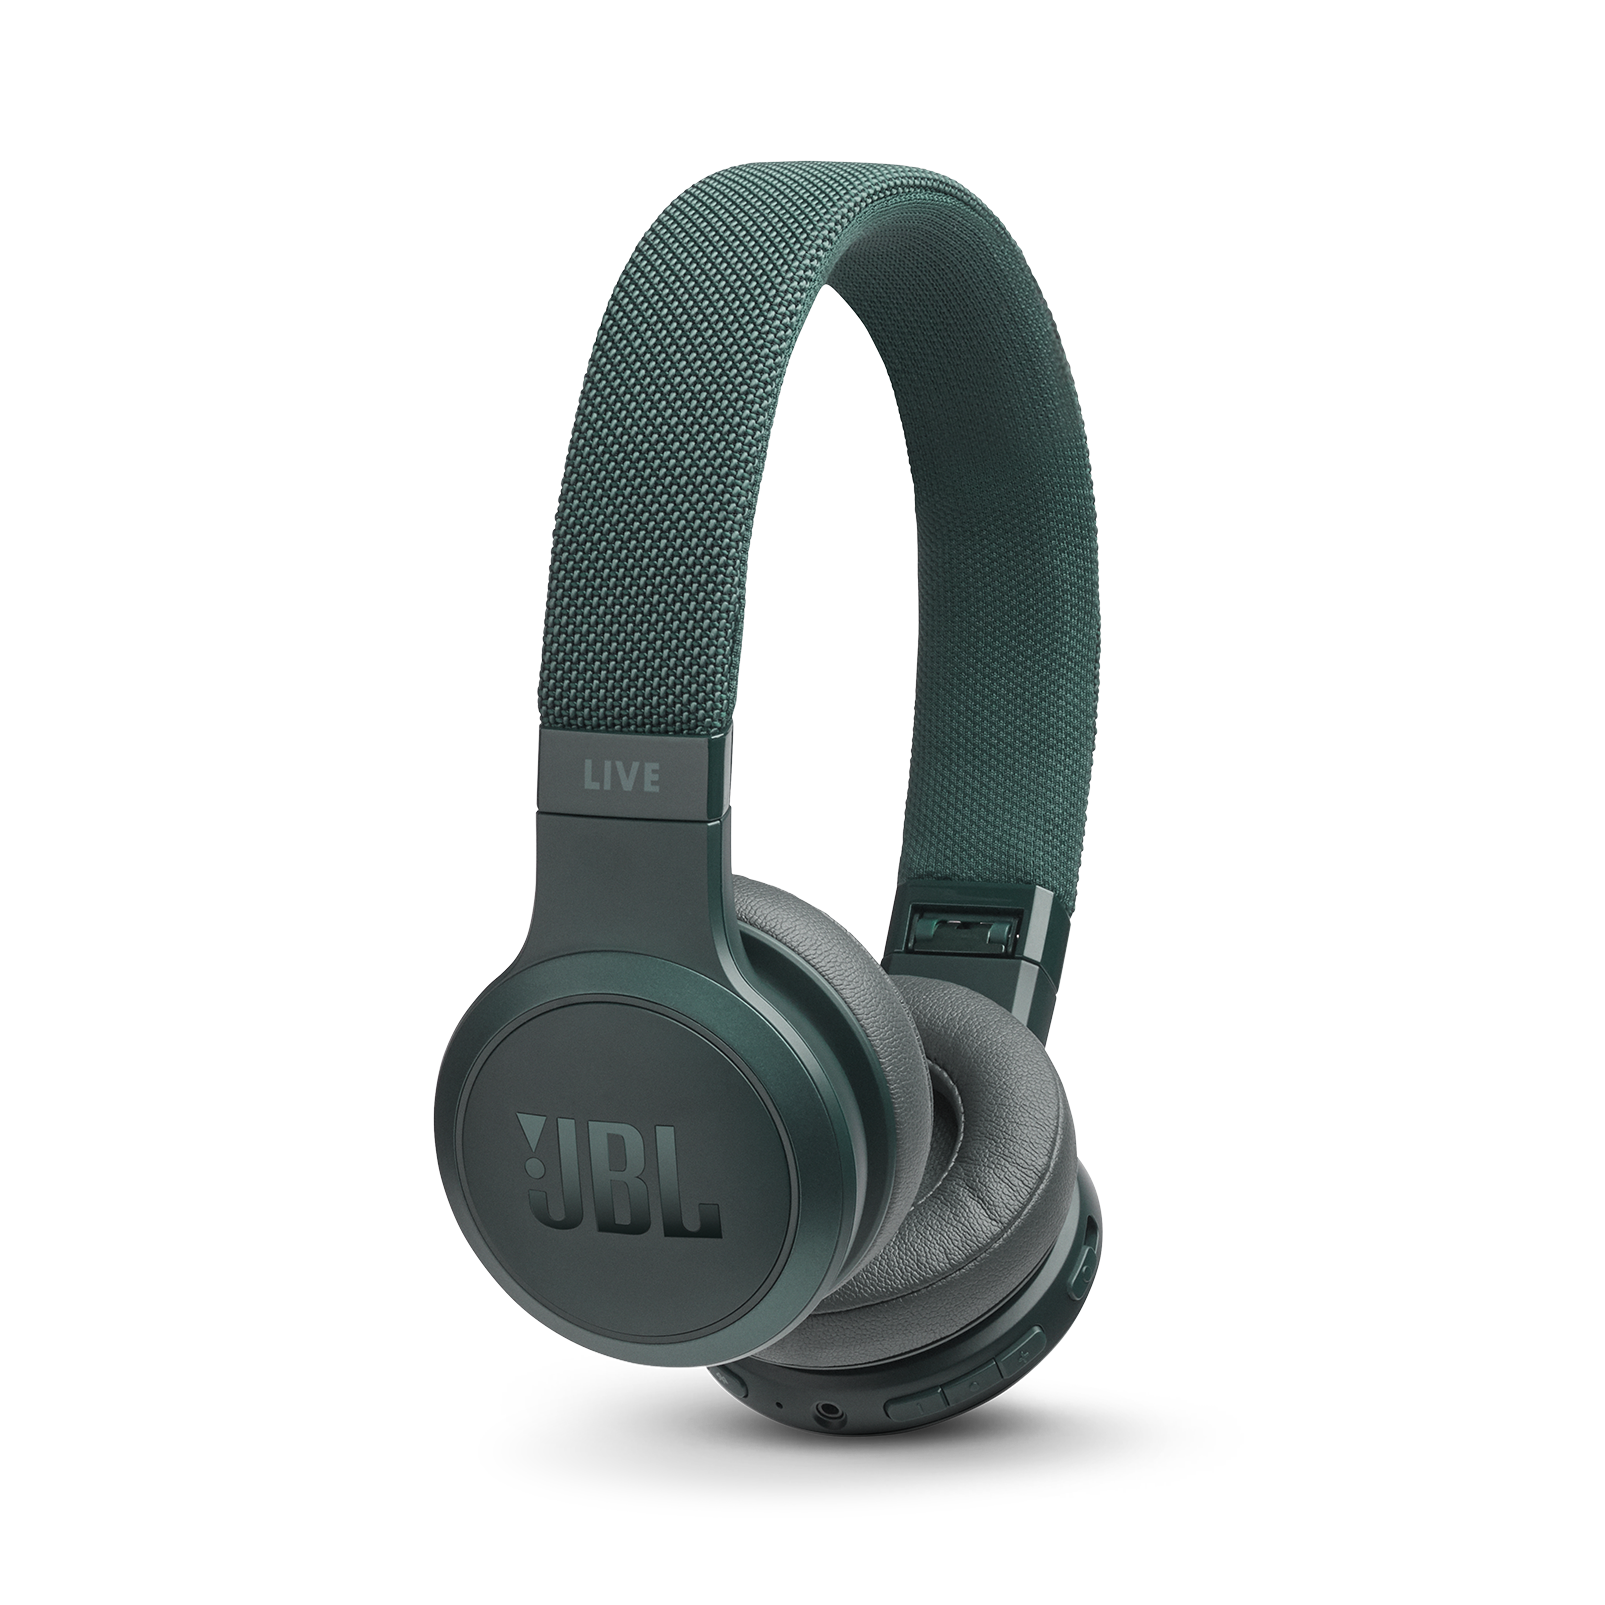 JBL Live 400BT On-Ear Wireless Headphones (400BT) JBL Signature Sound, Get help from your Voice Assistant, Ambient Aware and TalkThru Technology